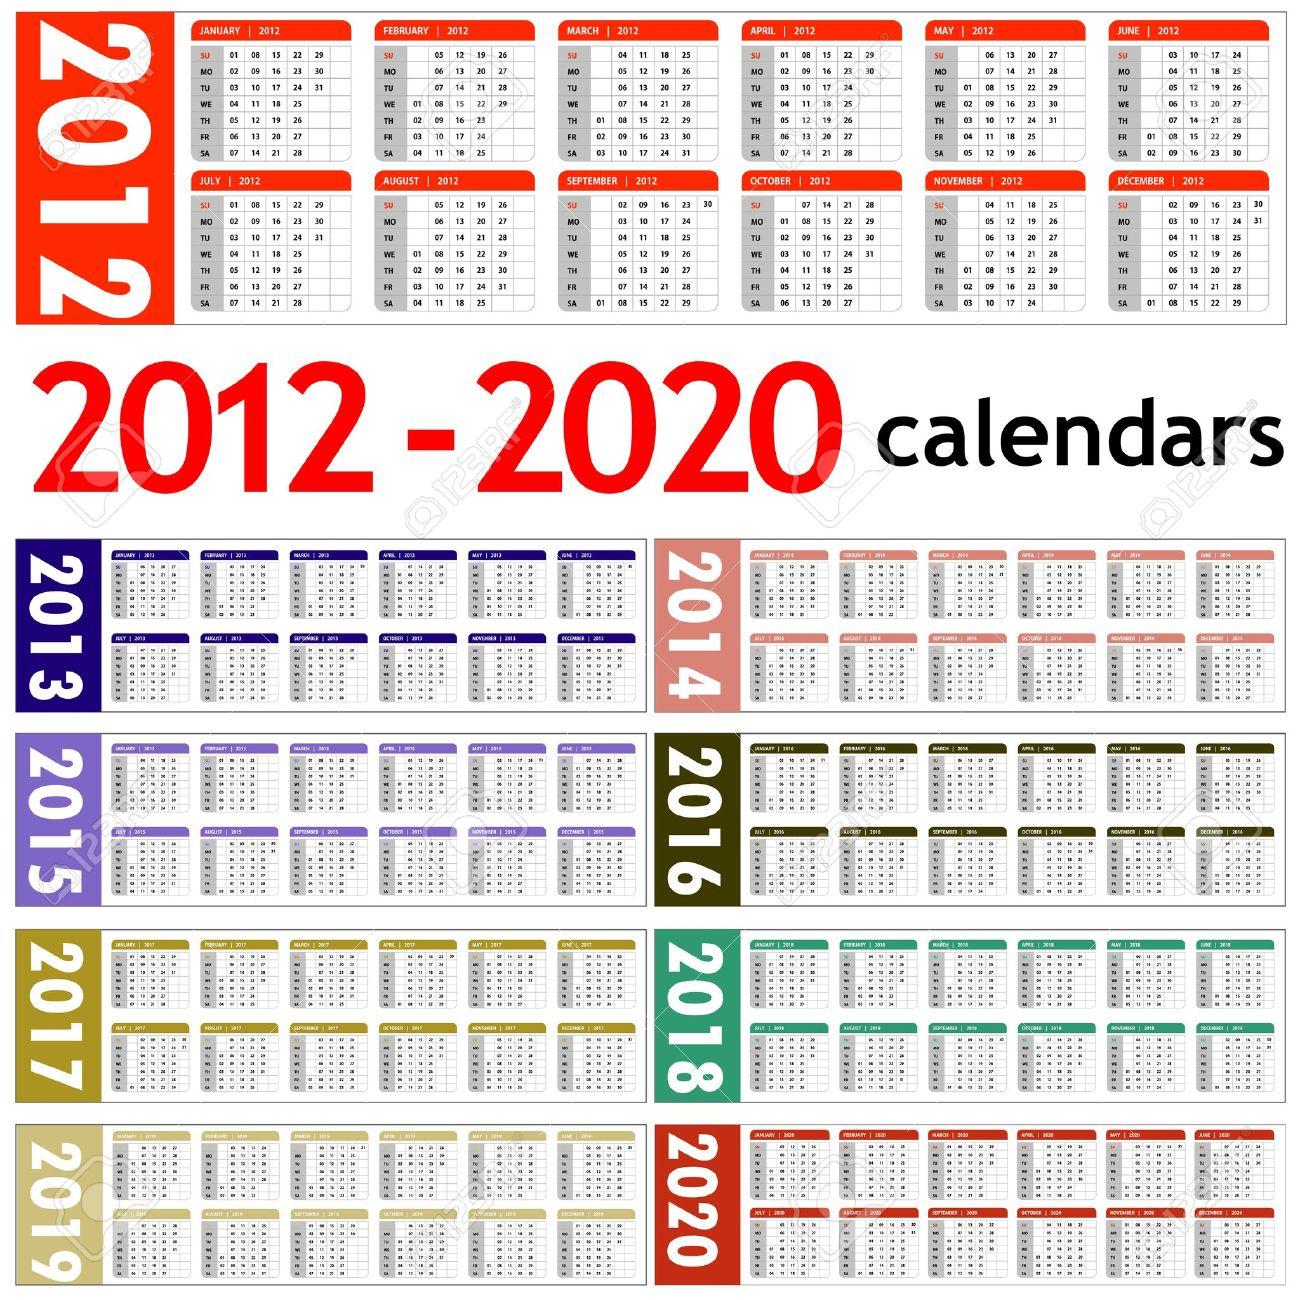 2014 & 2020 Calendar New Year 2012, 2013, 2014, 2015, 2016, 2017, 2018, 2019,.. Royalty